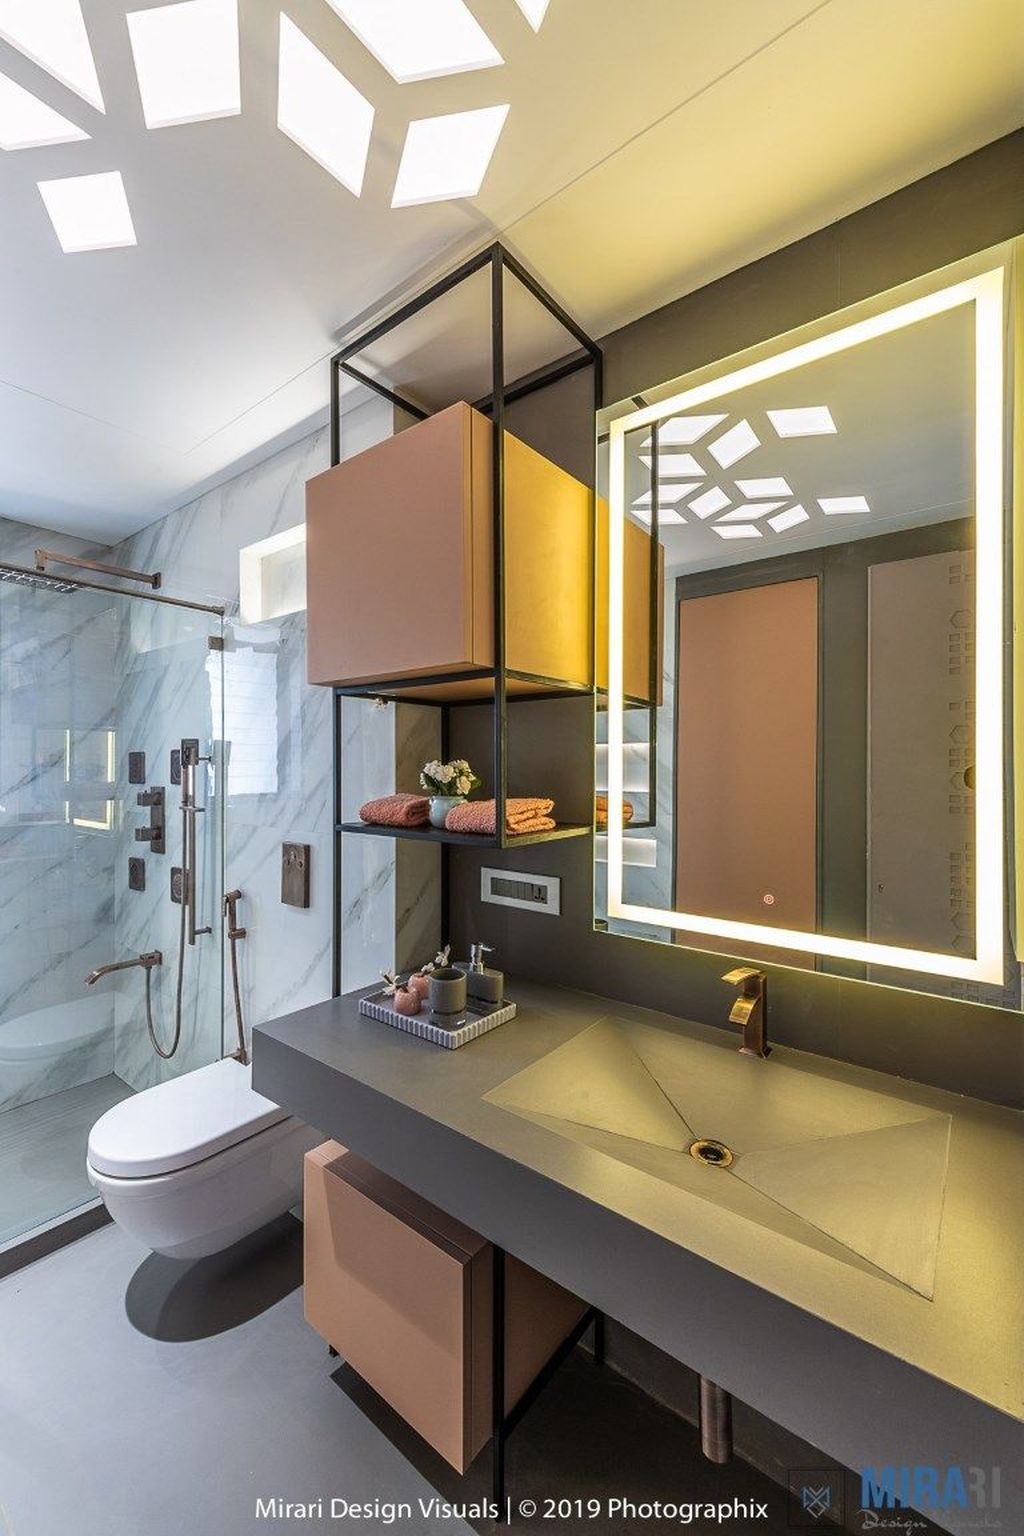 Inspiring Bathroom Interior Design Ideas 26